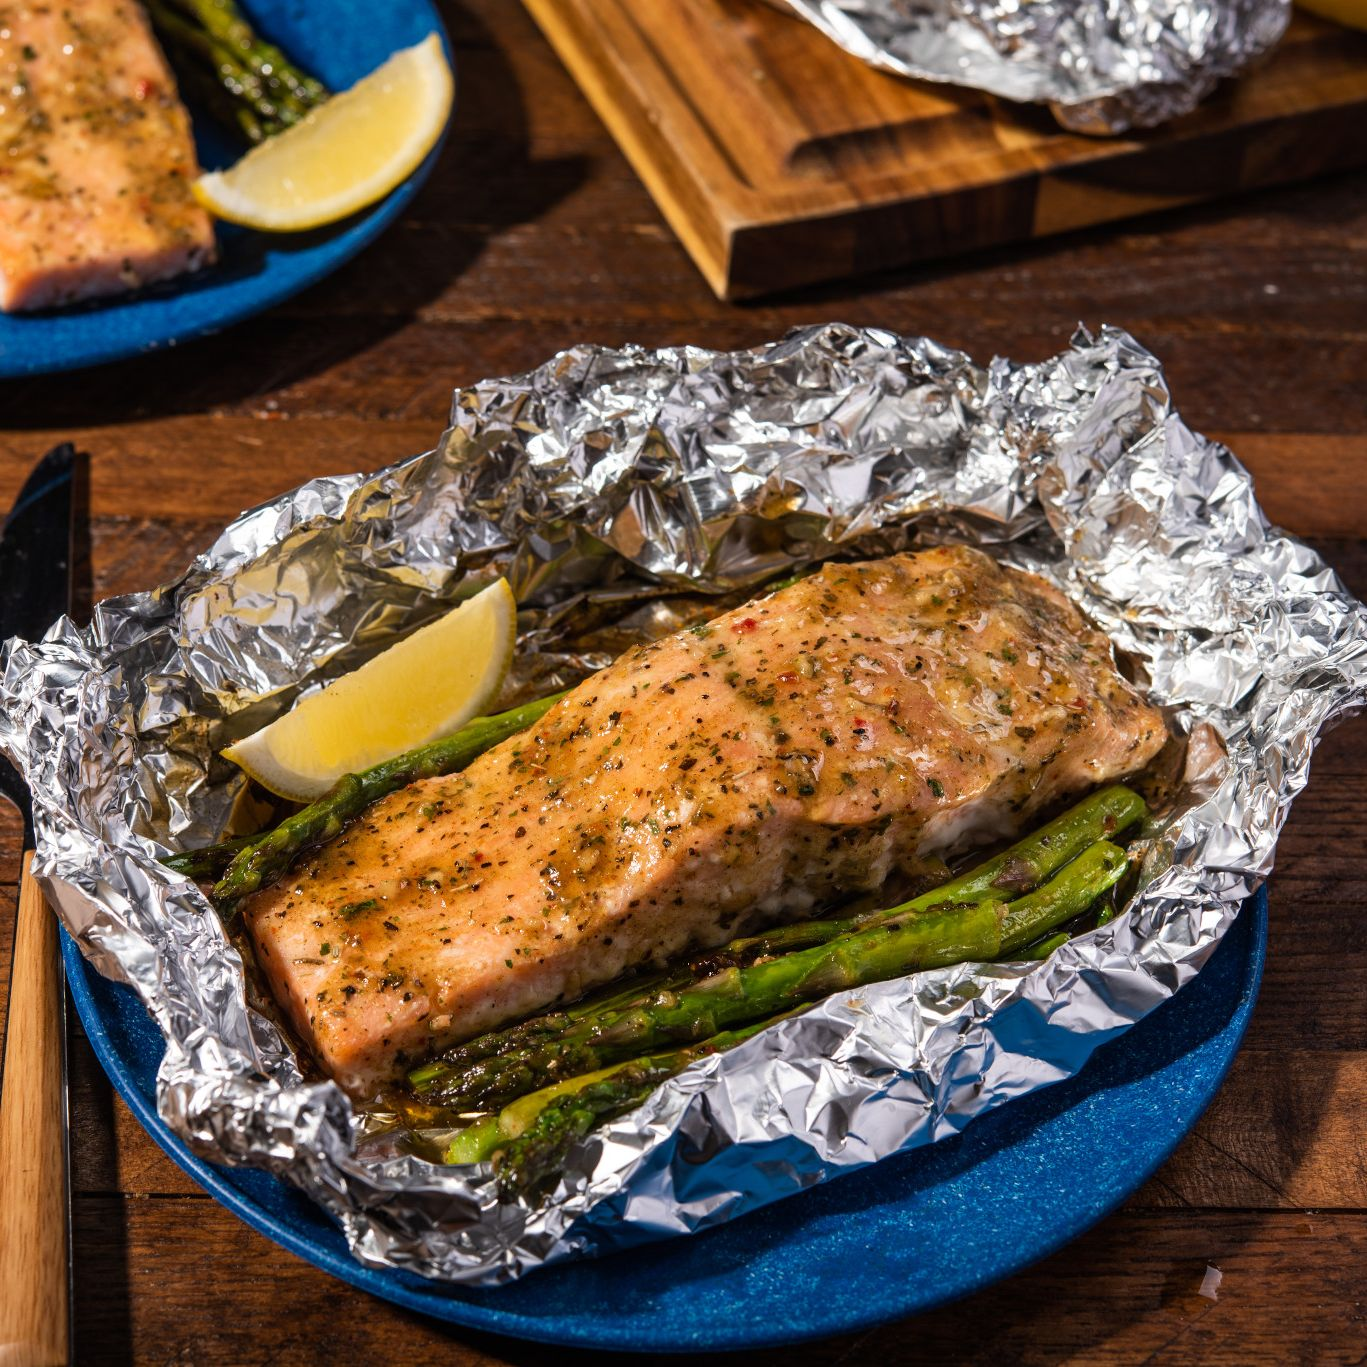 Grilled Salmon & Asparagus Foil Packets